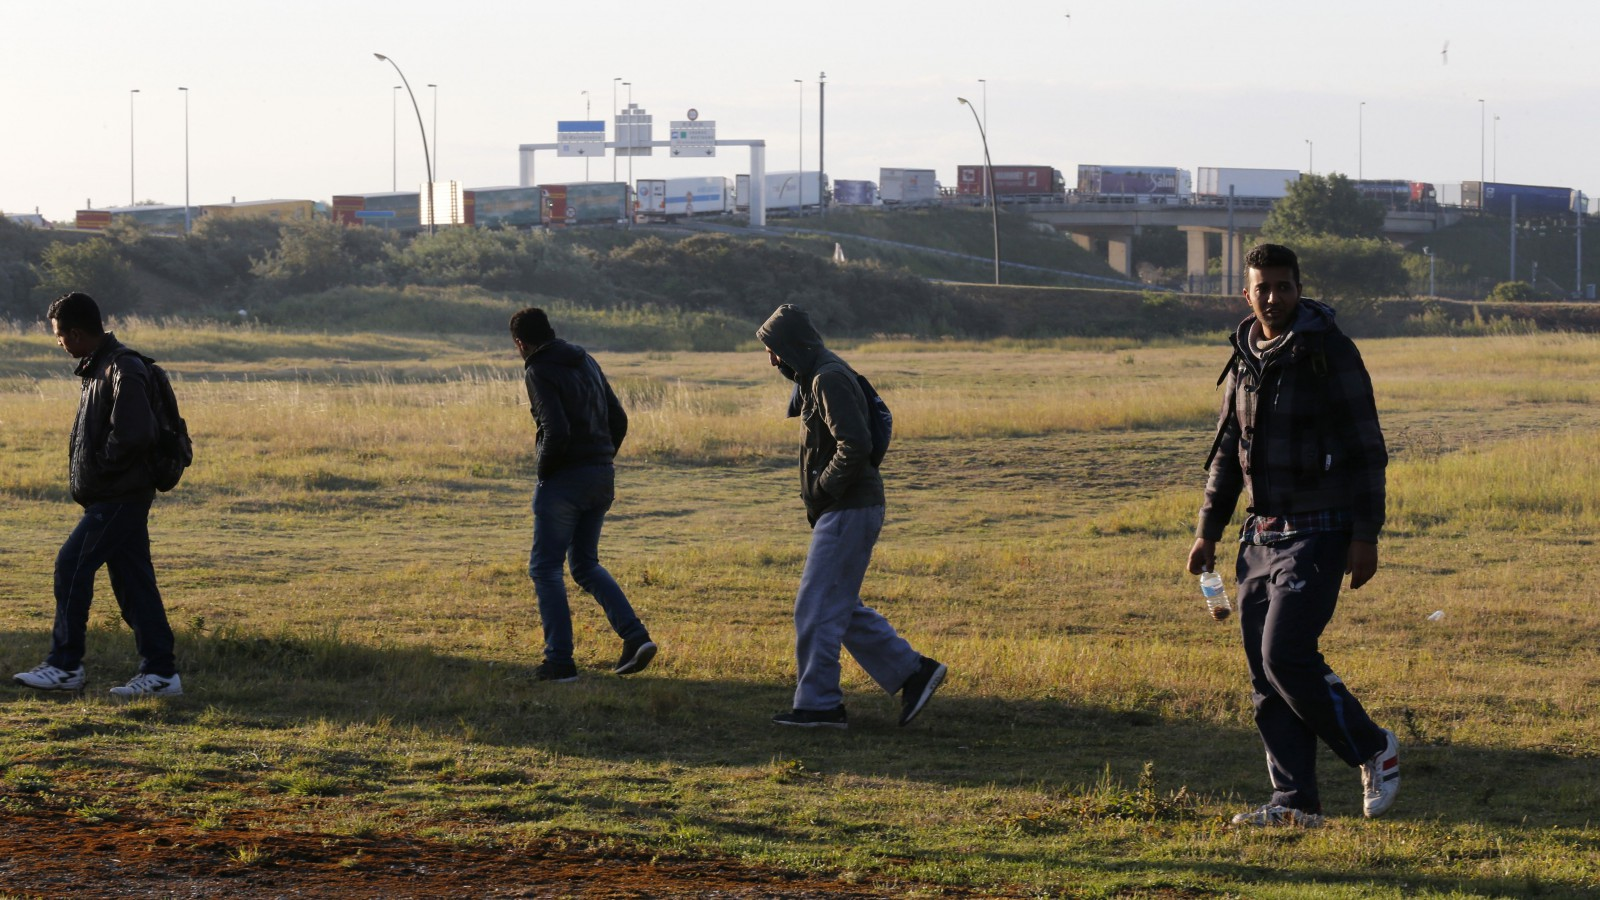 Migrants walk near the road after they left their hiding spot at the Eurotunnel site early in the morning as lorries queue to embark on shuttles at the Eurotunnel terminal in Calais, northern France, July 29, 2015. A migrant died trying to cross to Britain from France early on Wednesday, French police said, adding to a number of recent deaths in the Channel Tunnel as British ministers and security chiefs were to meet over the crisis in Calais. There were about 1,500 attempts by migrants to access the tunnel on Tuesday night, a Eurotunnel spokesman said, after 2,000 attempts the previous night.    REUTERS/Pascal Rossignol - RTX1M8AJ